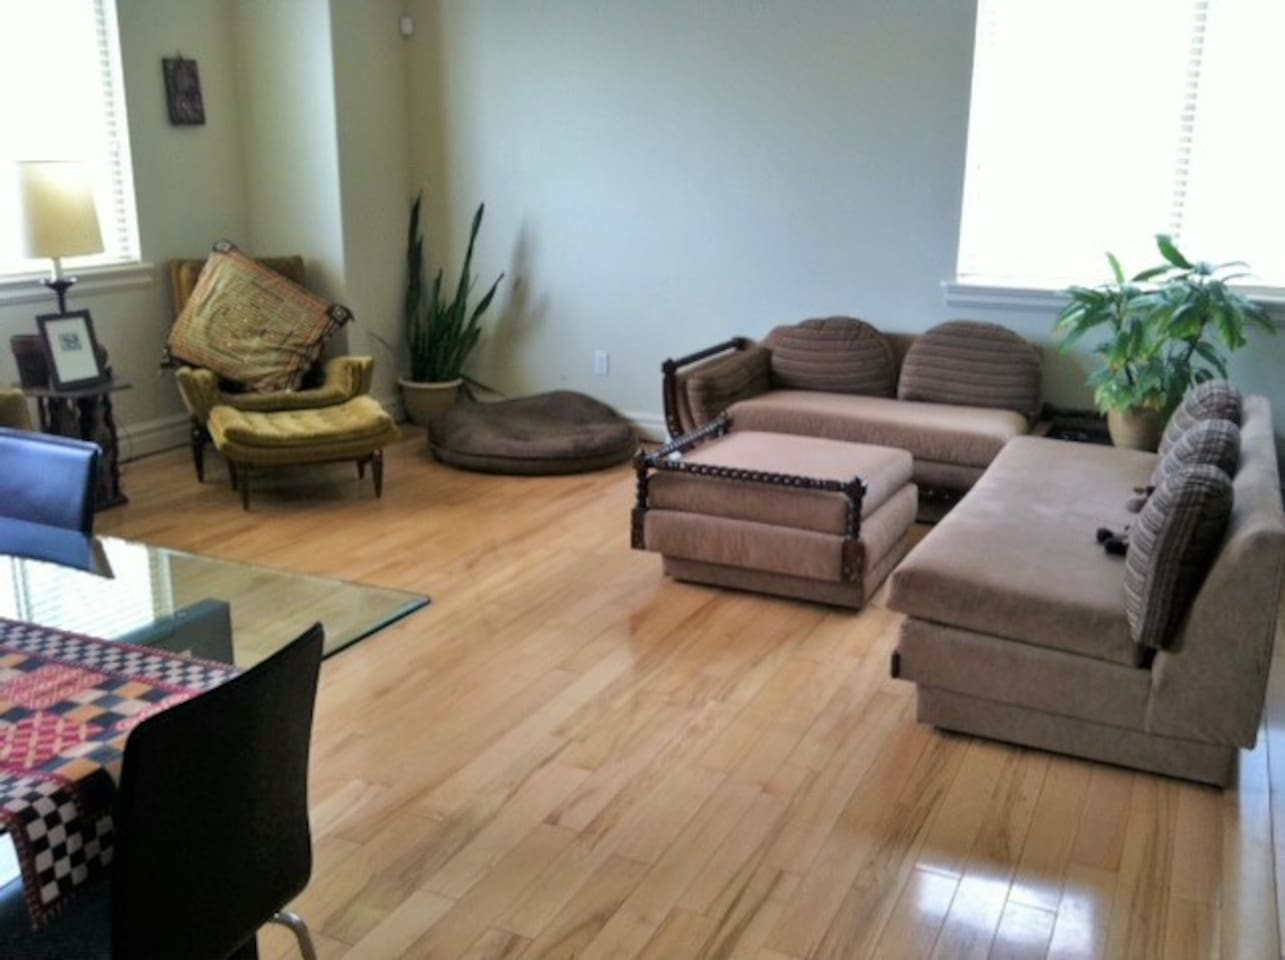 Large, spacious living area with comfortable furniture